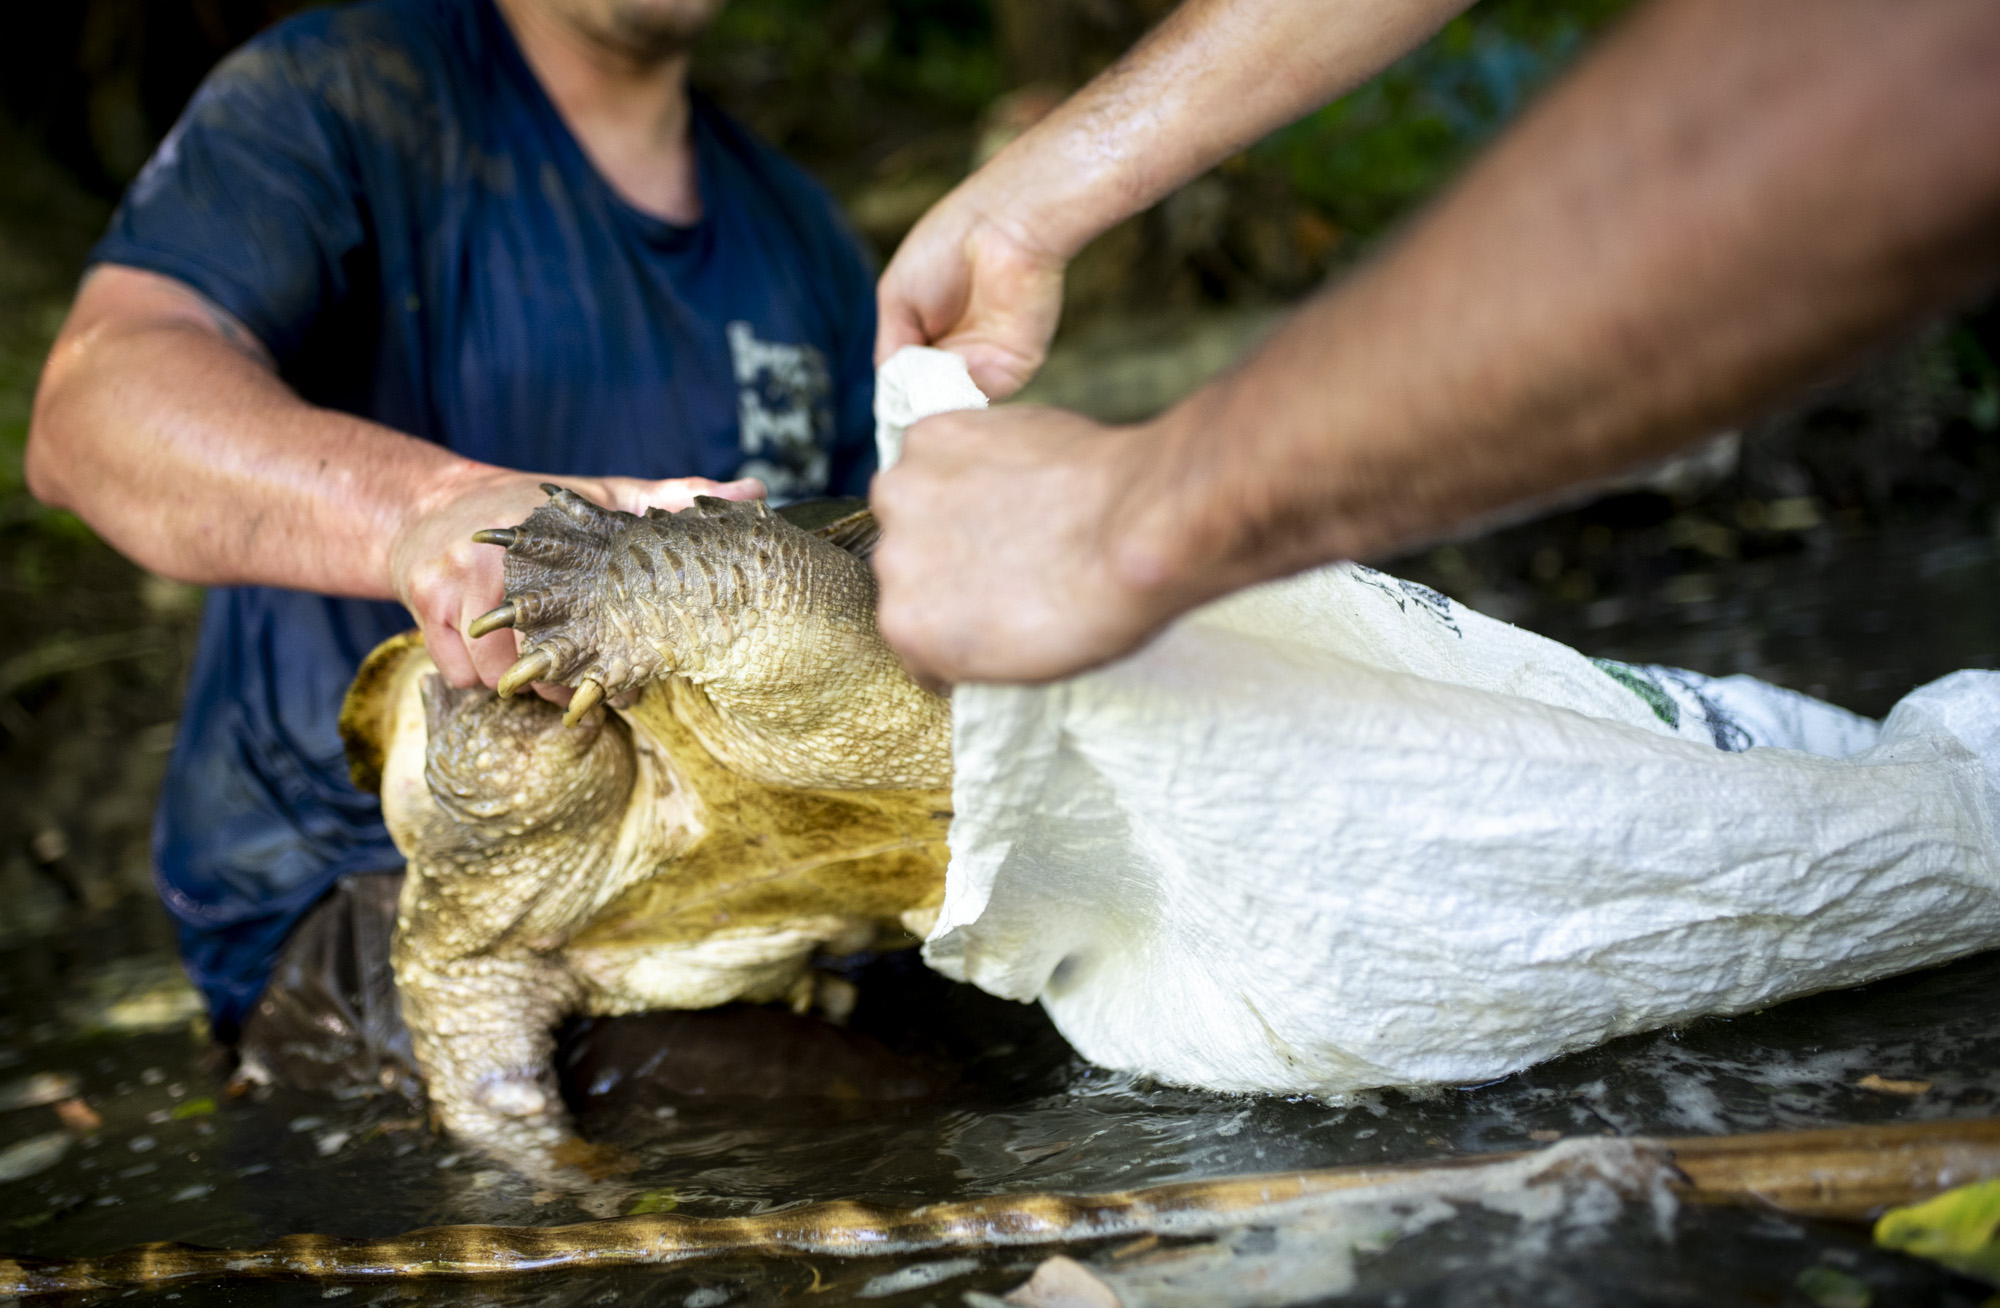 Joe Clemens holds open the bag to put the snapping turtle in so they can carry is while they hunt for more turtles.